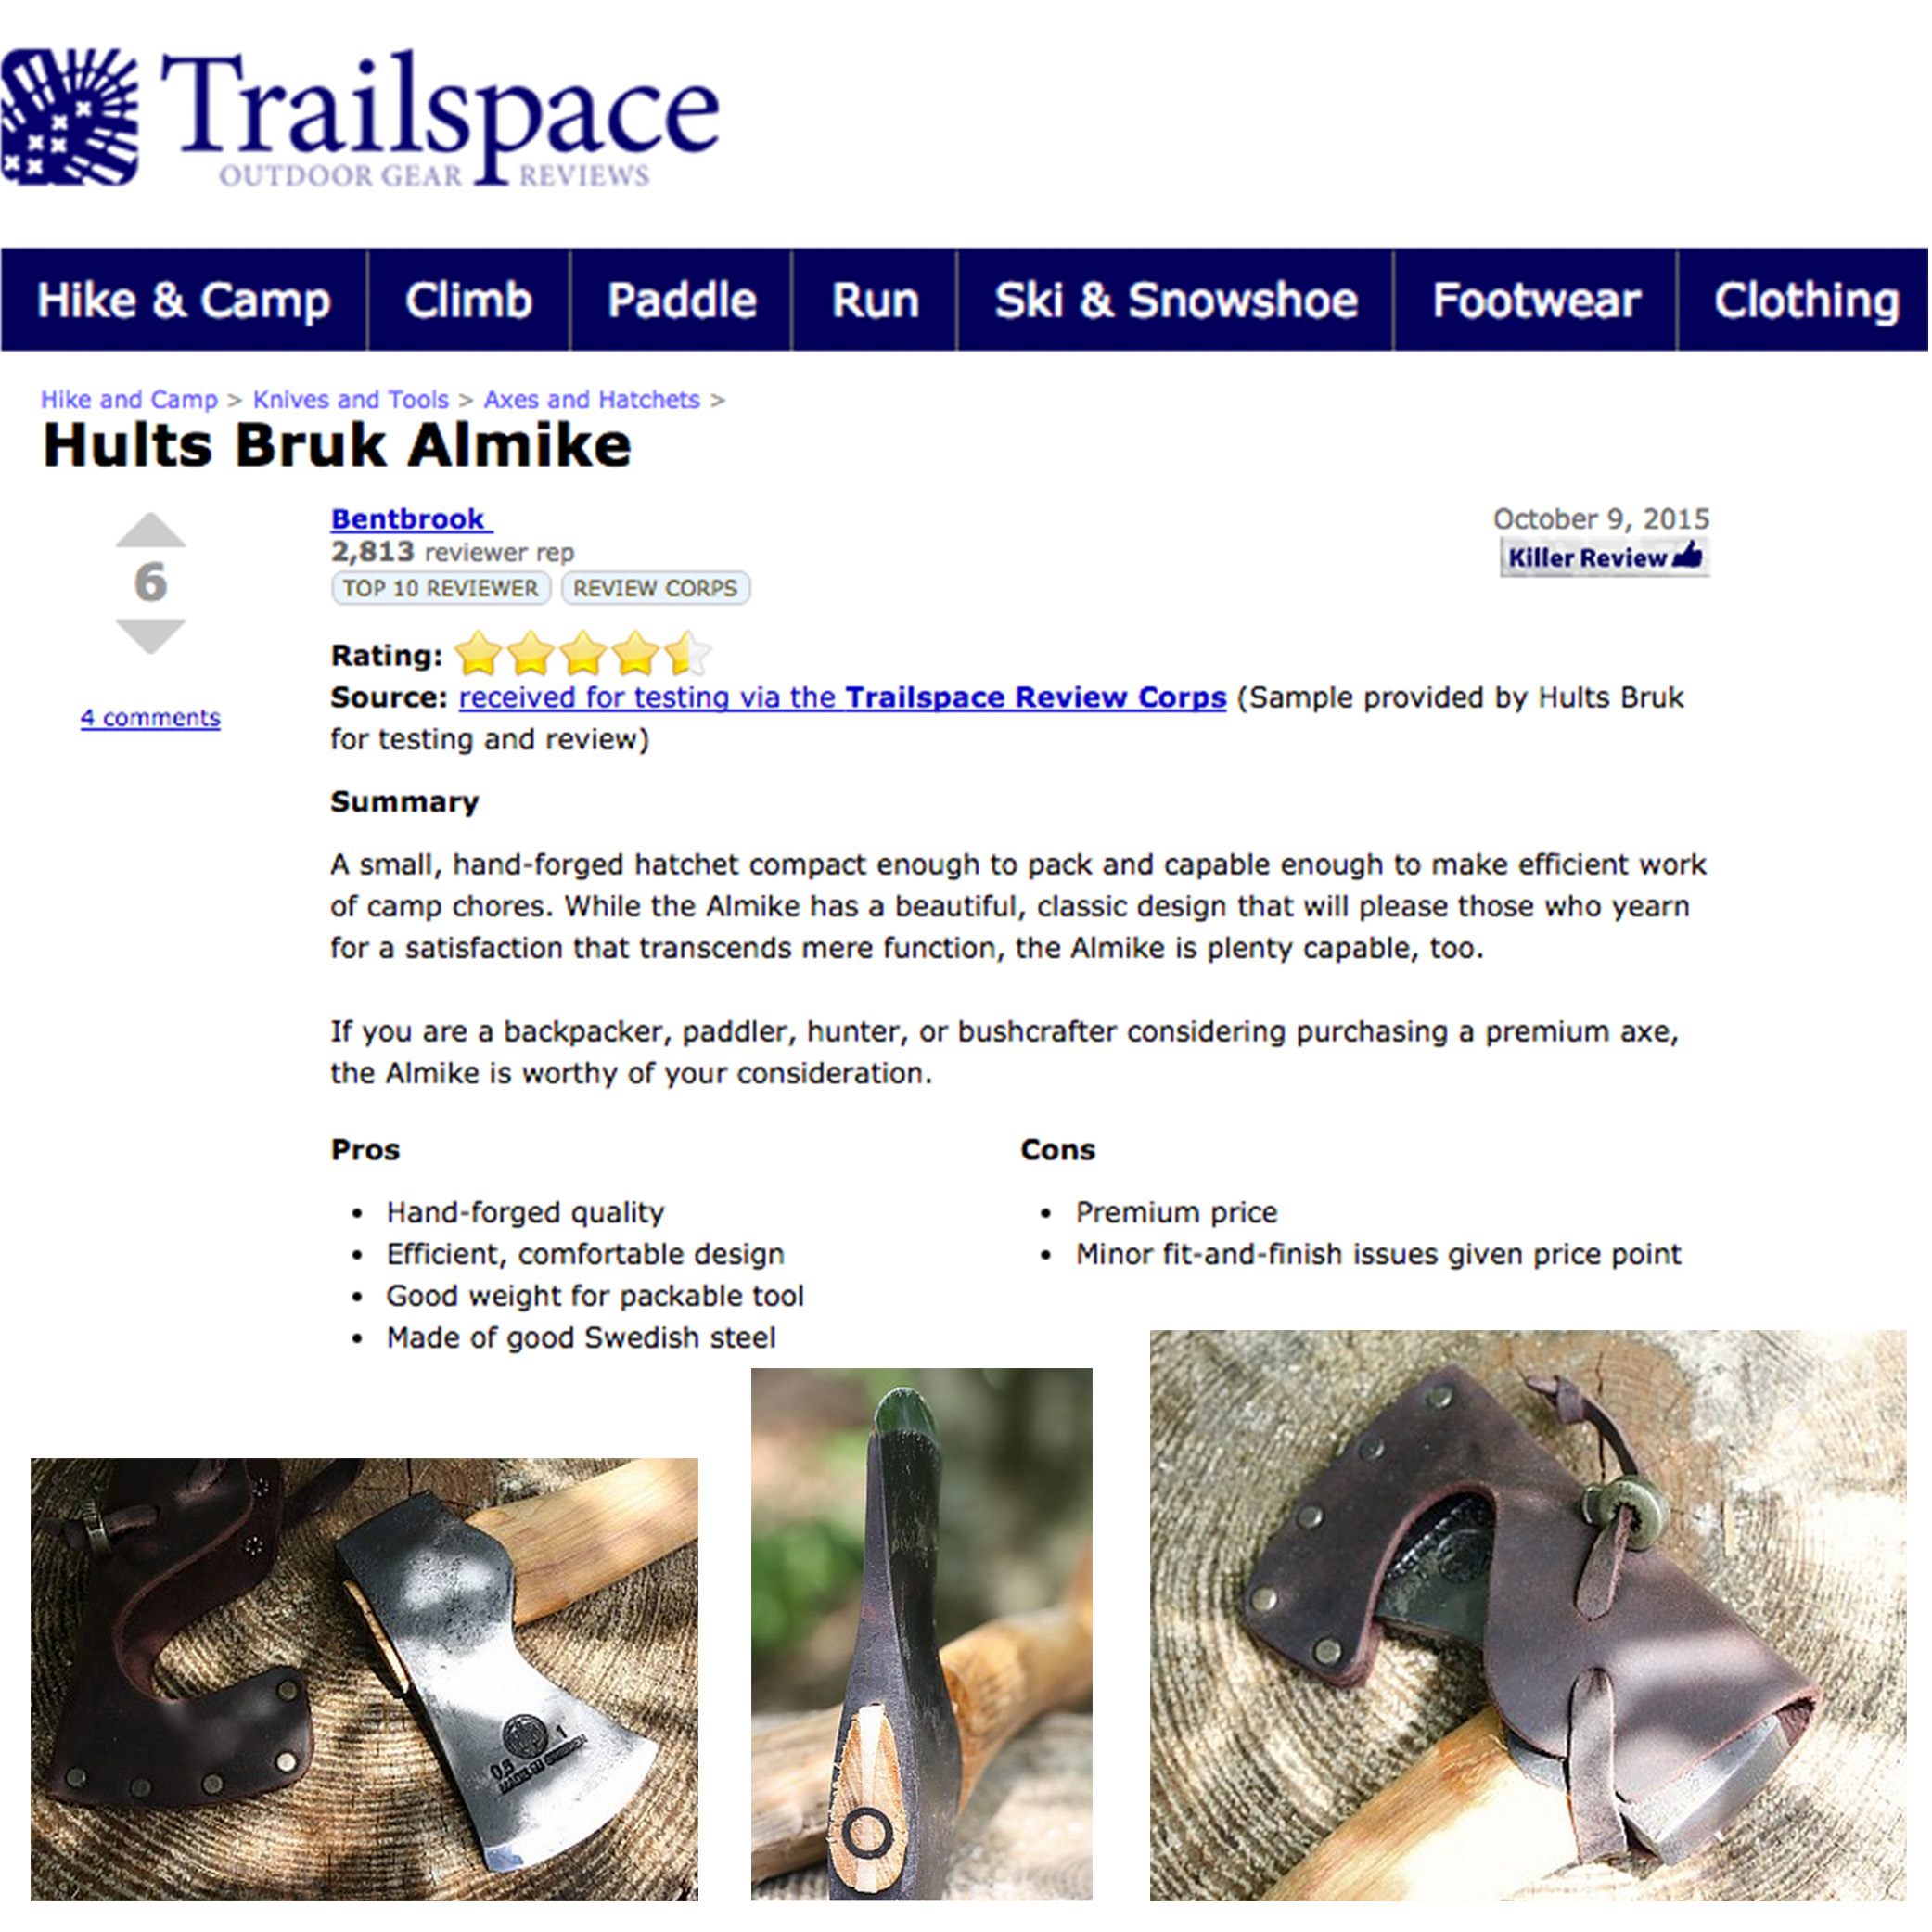 Trailspace Praises the Hults Bruk Almike for its Capability